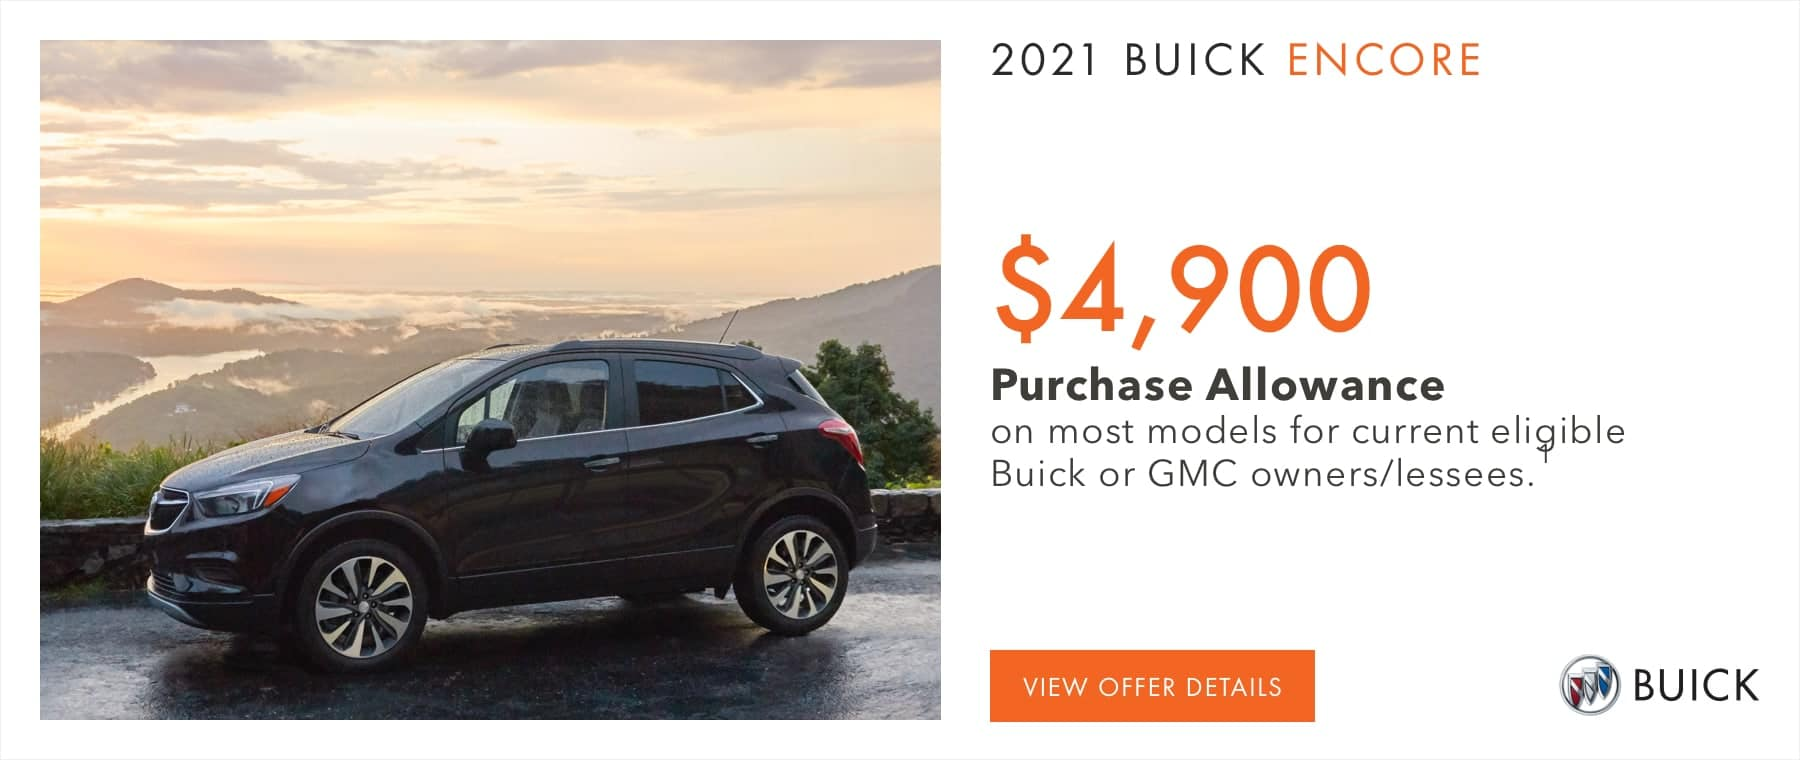 $4,900 Purchase Allowance on most models for current eligible Buick or GMC owners/lessees.1